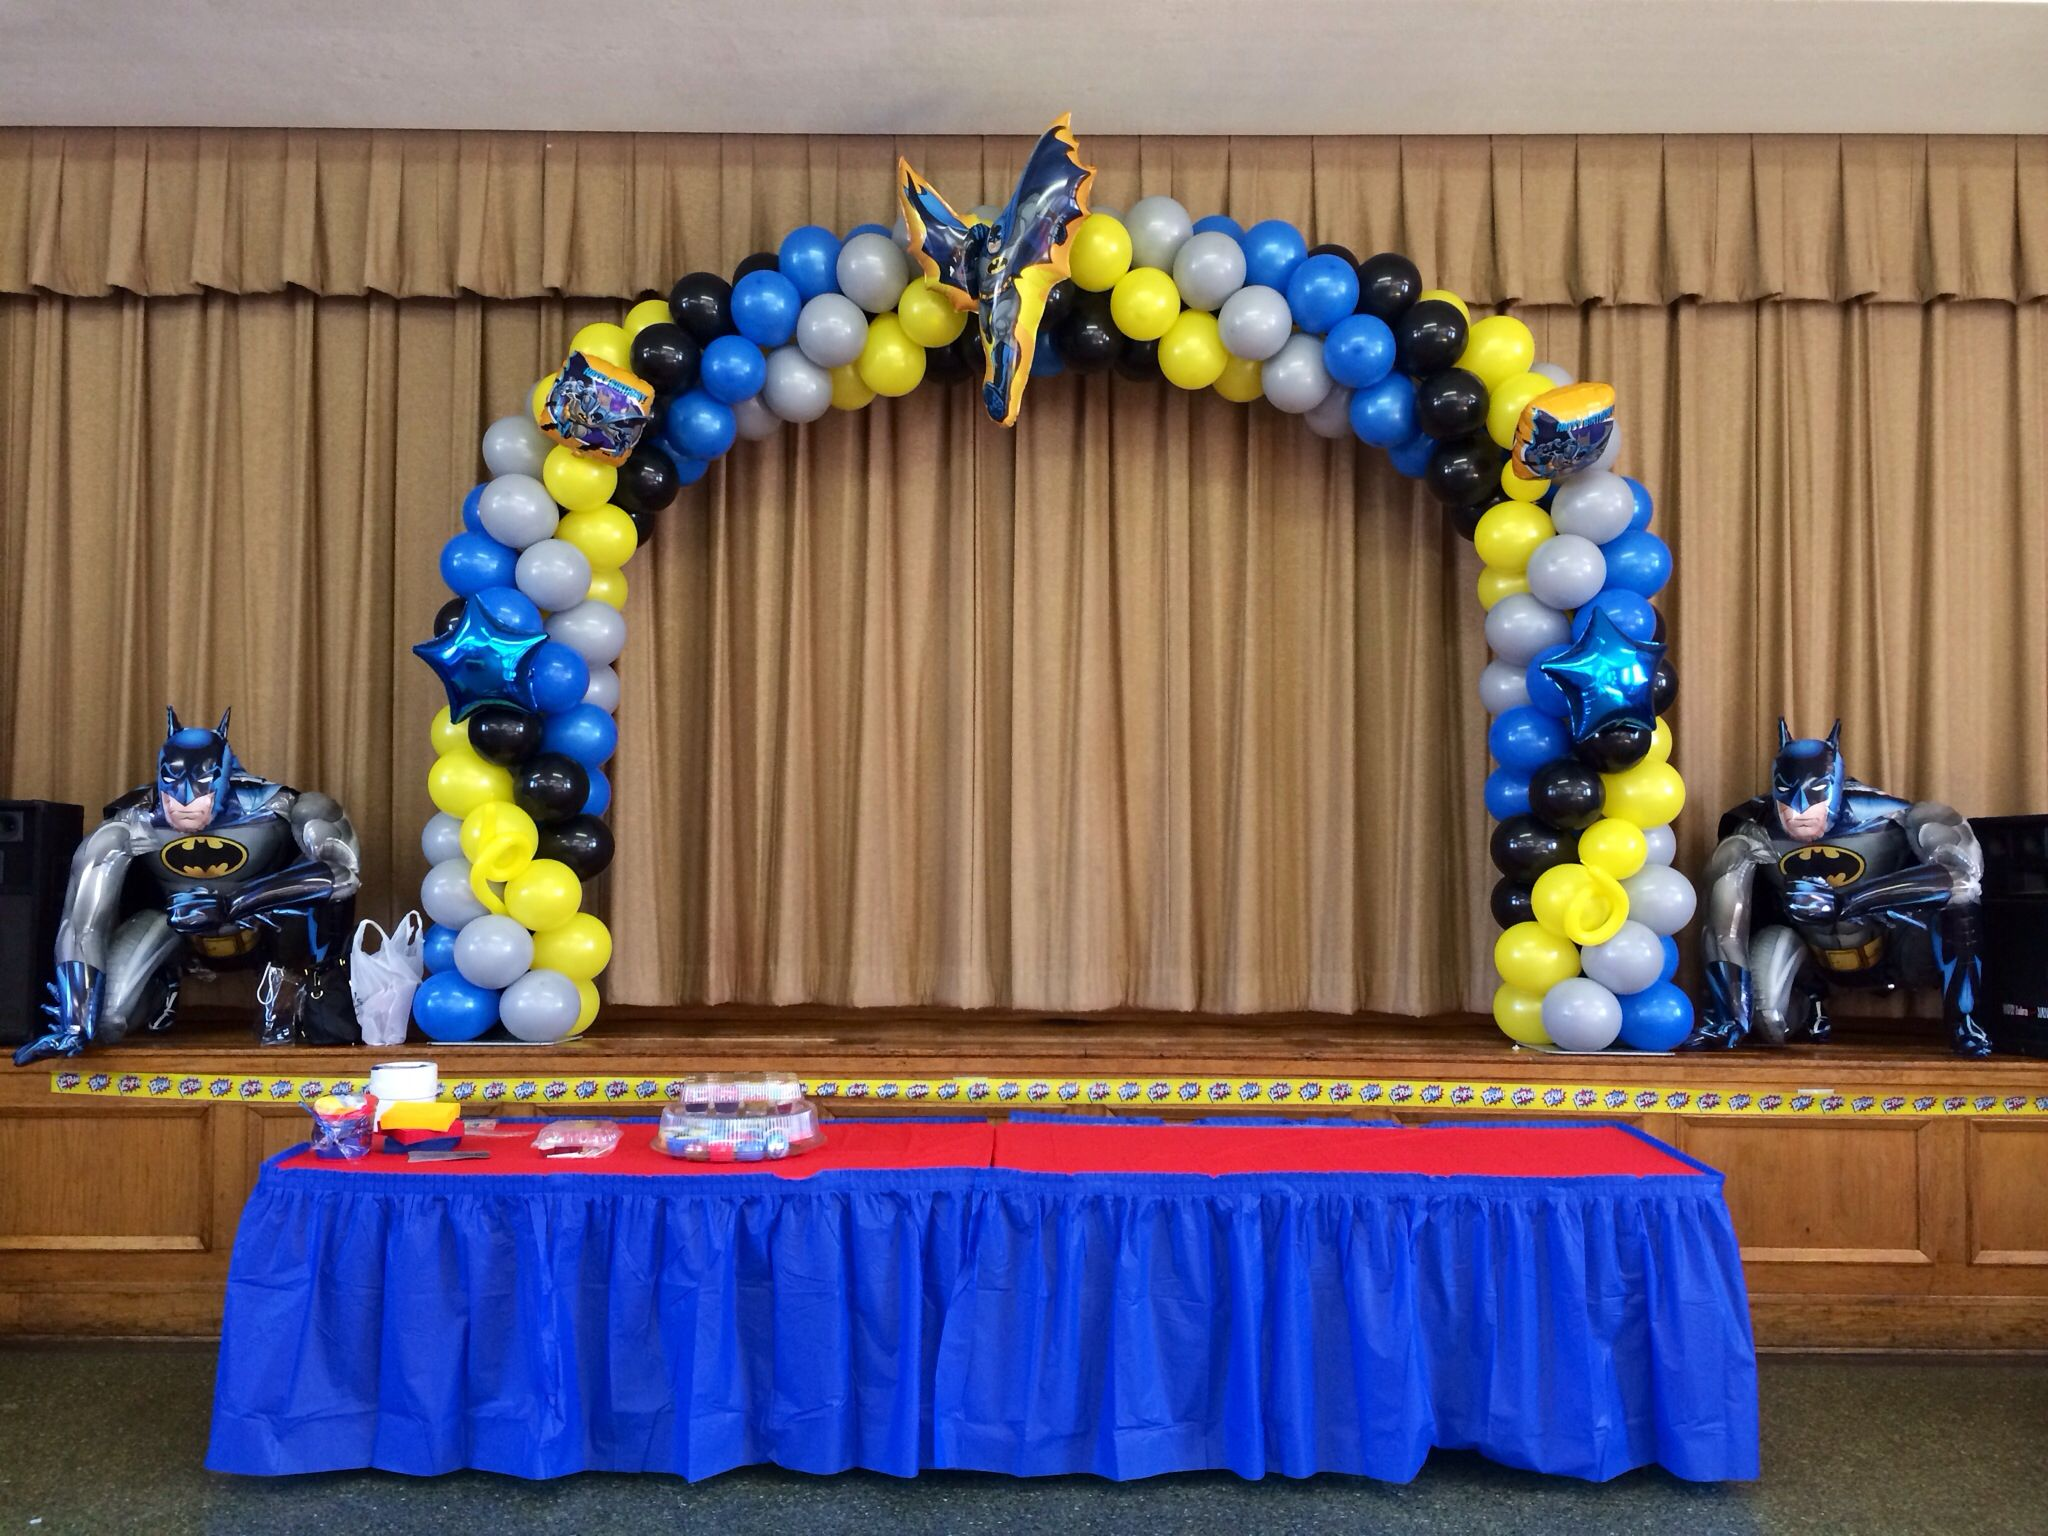 Batman balloon arch with airwalkers balloon arches for Balloon decoration arches